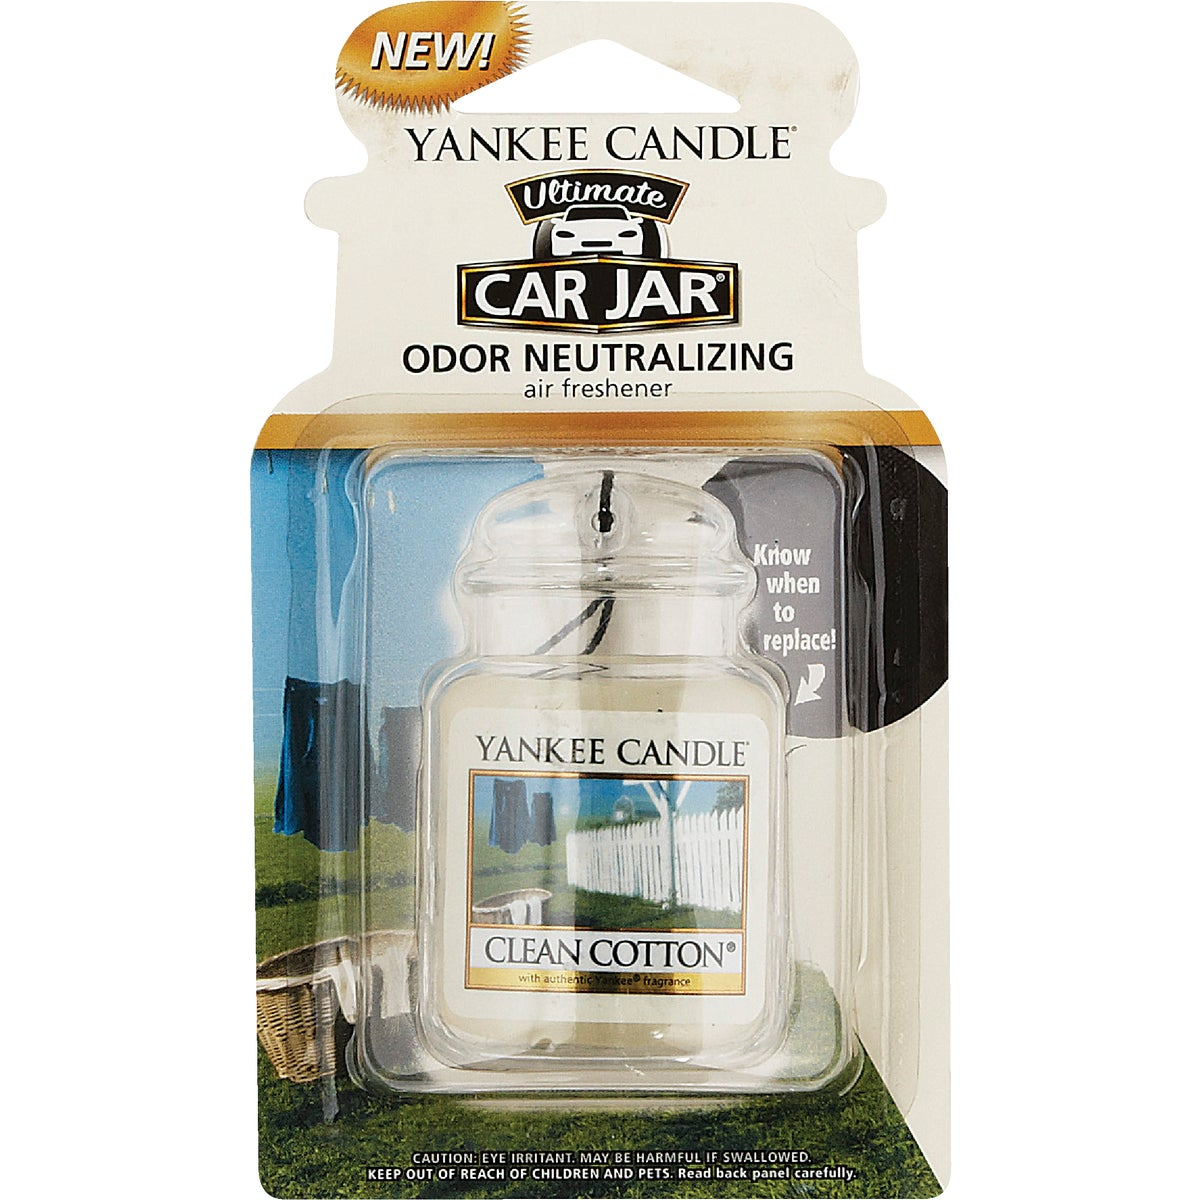 CLN COTTON CAR JAR ULTMT